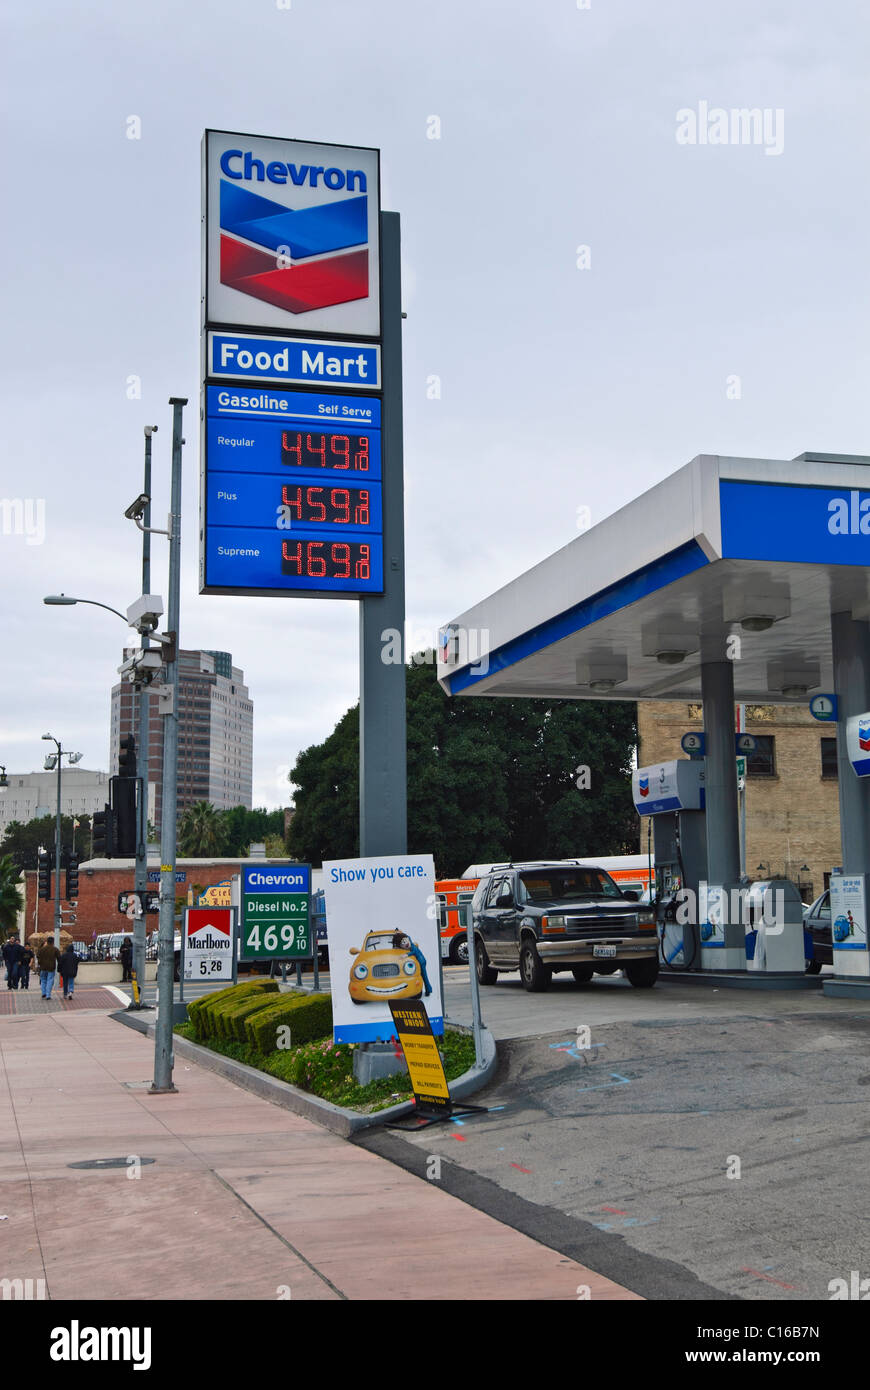 An expensive gas station with prices above 4 dollars per gallon. - Stock Image